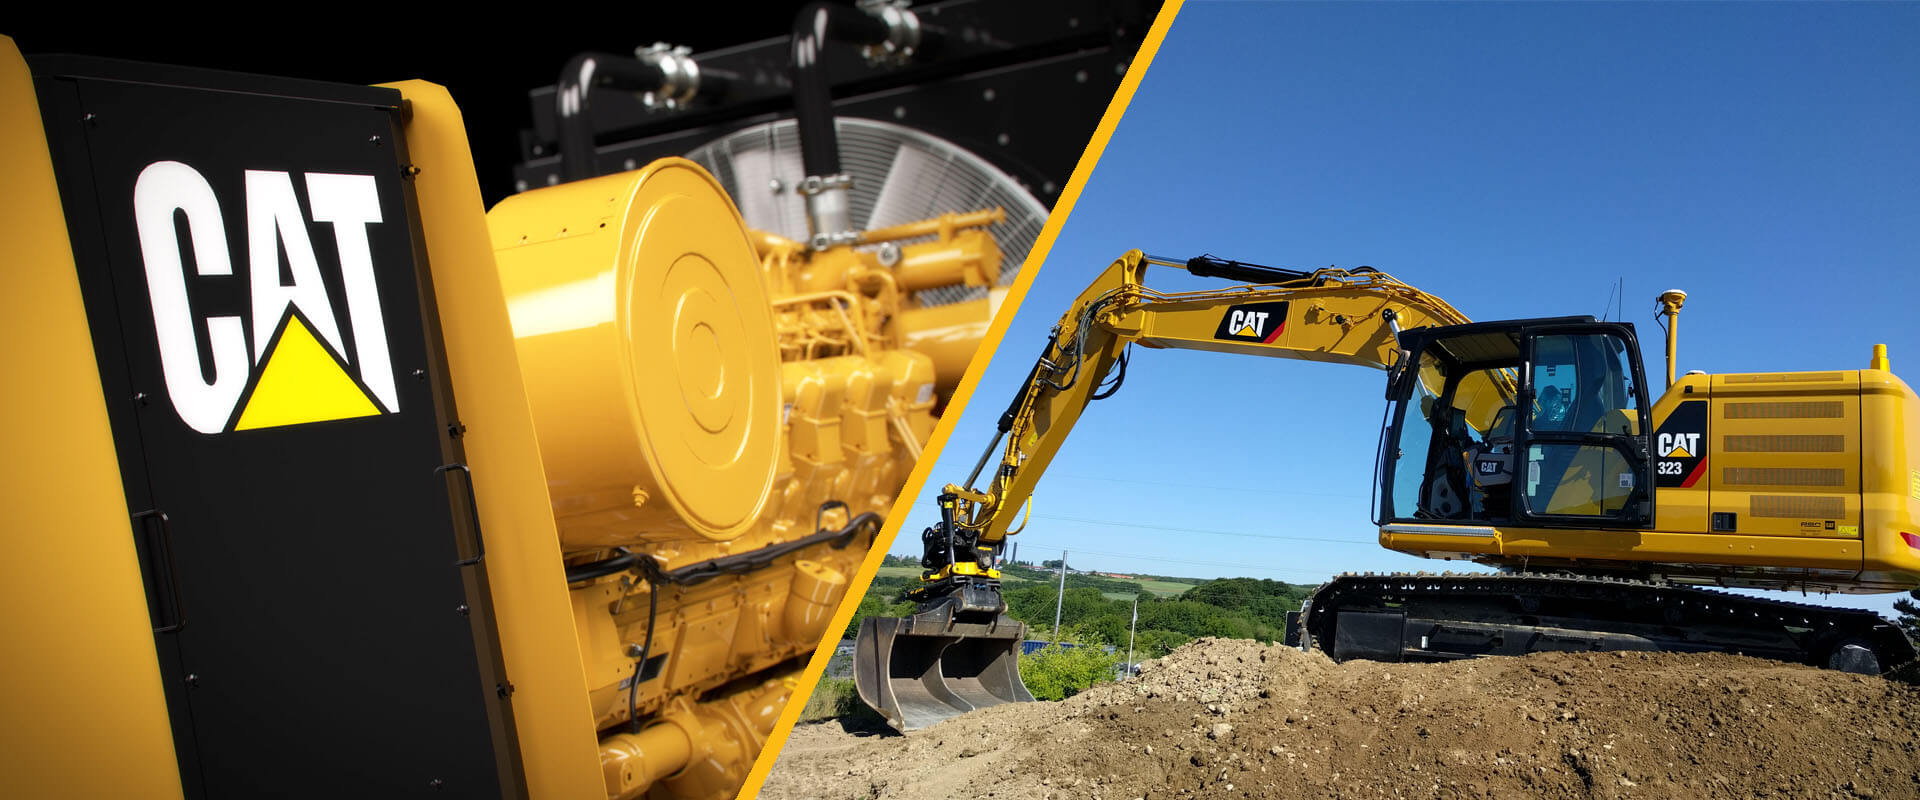 frontpage-power-equipment-version2.jpg